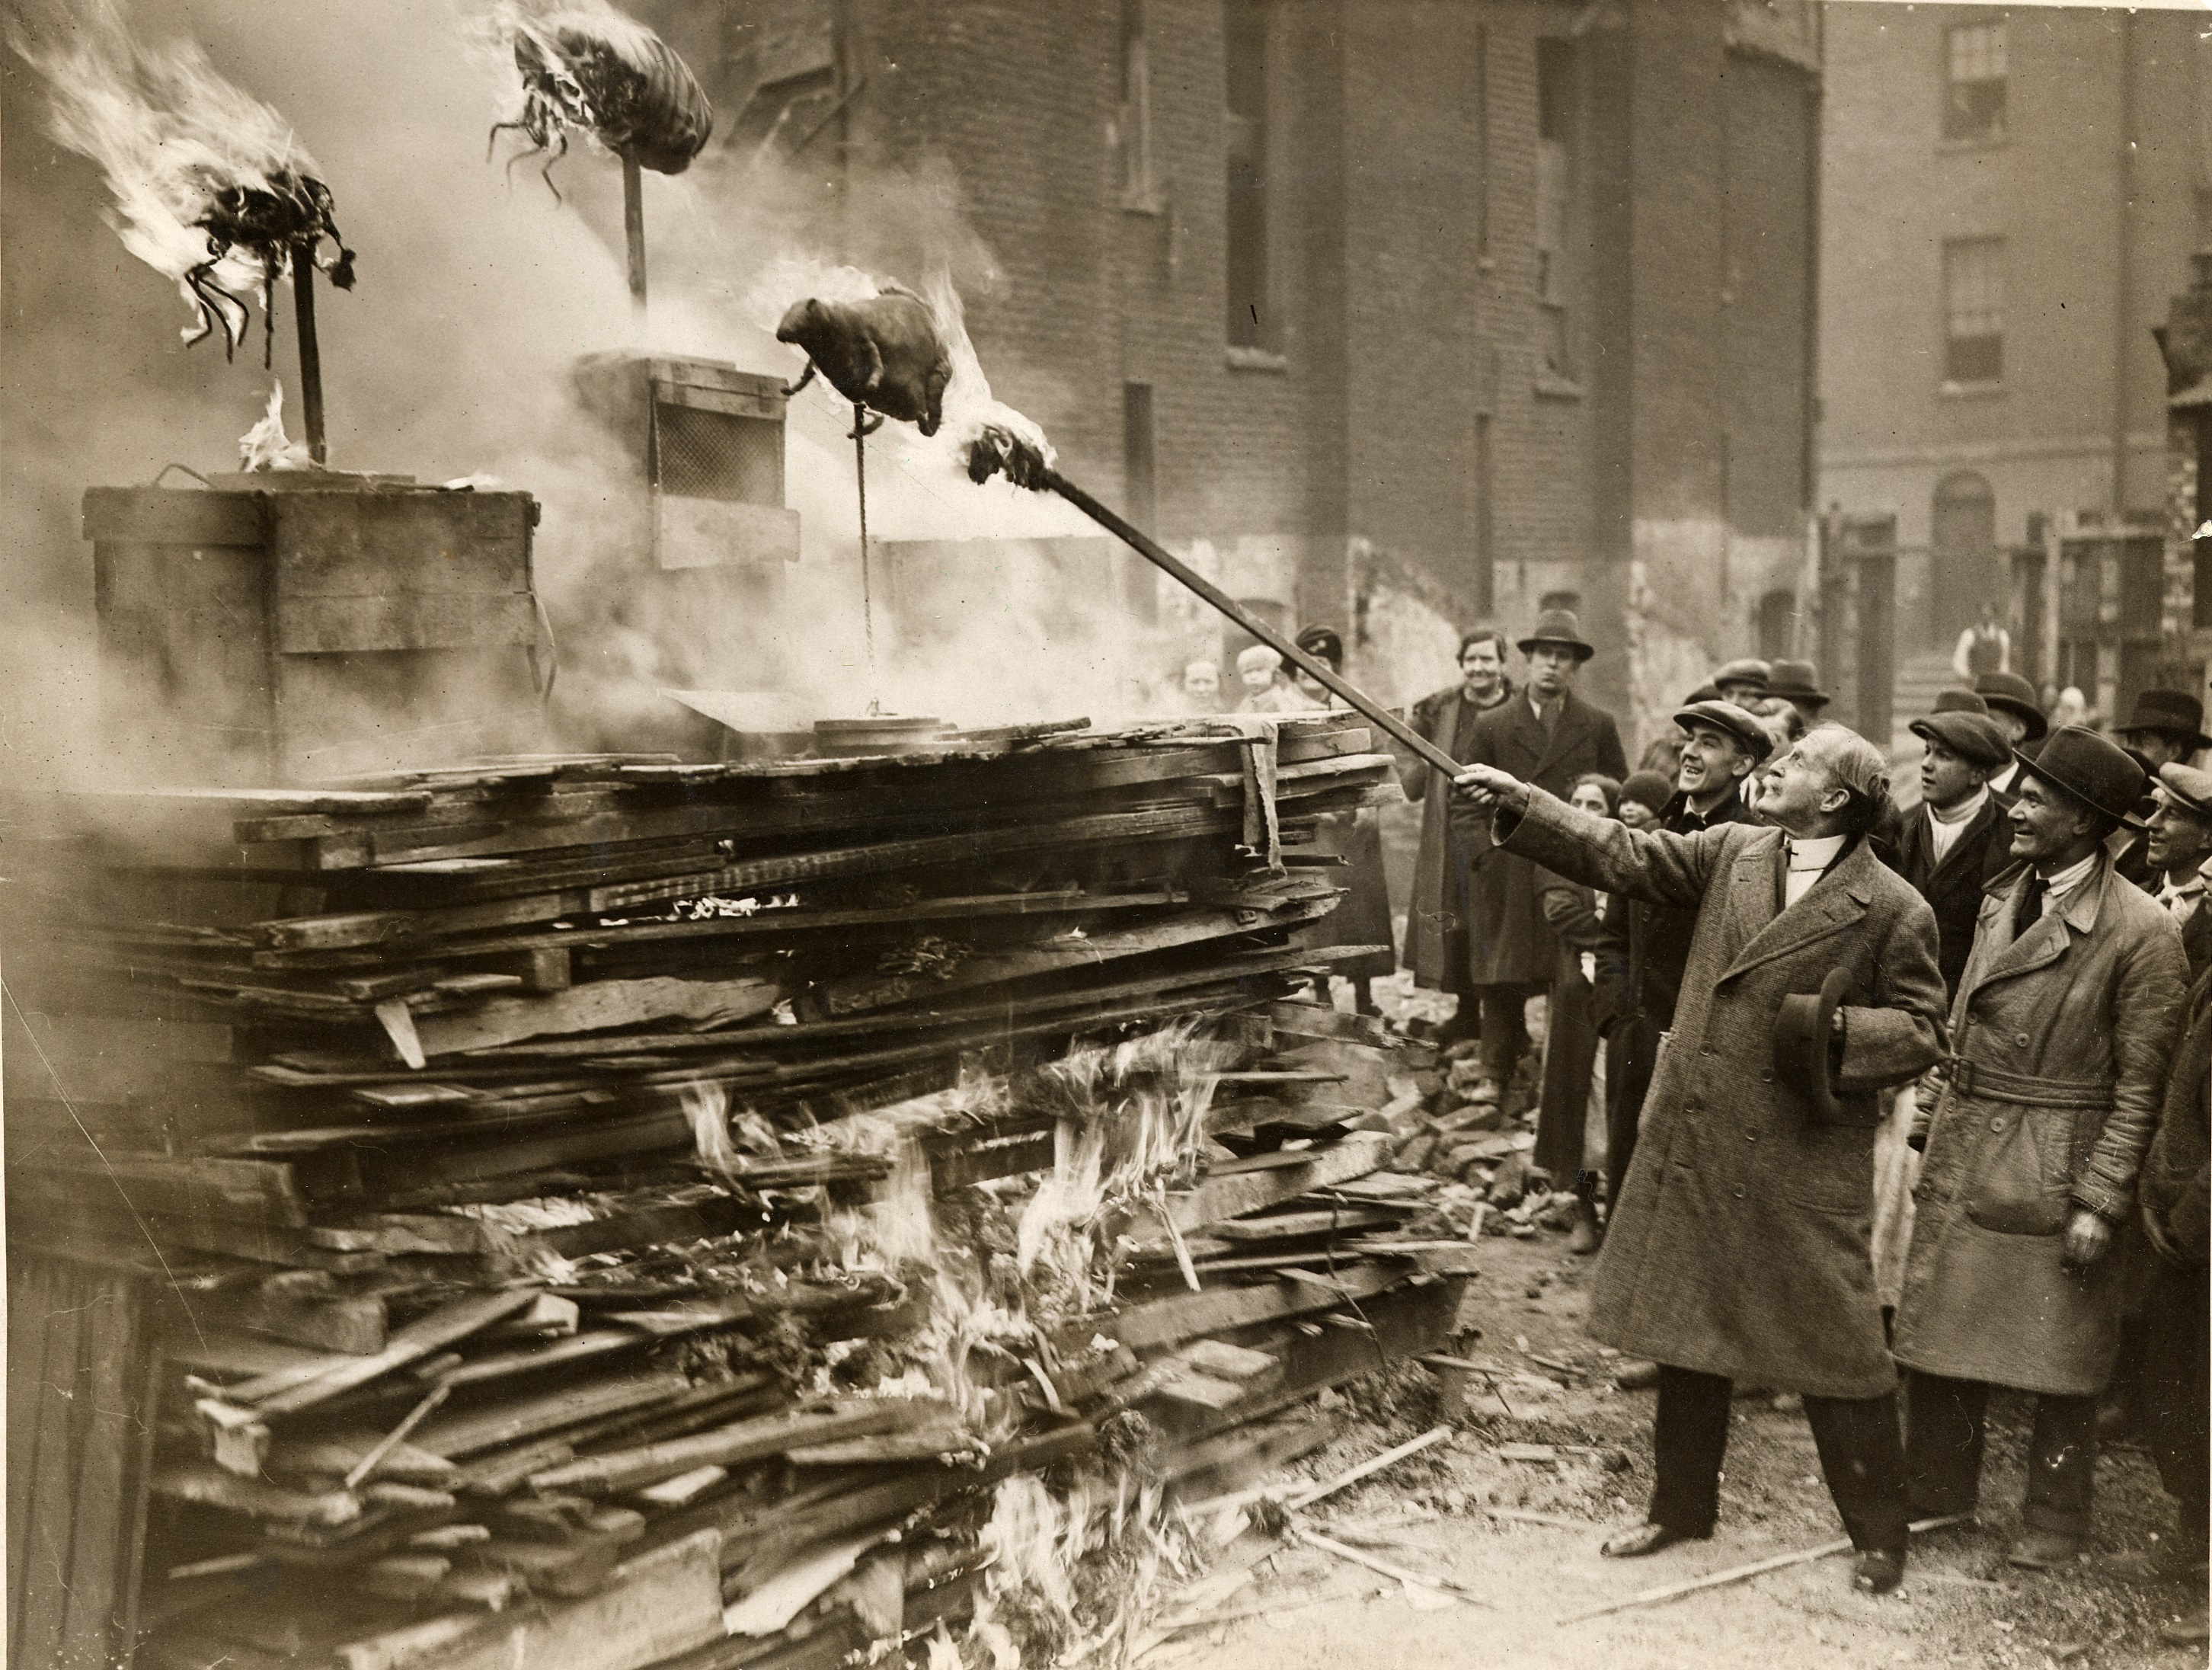 Ceremonial burning of models of bugs at the opening of St Christopher's Flats in Somers Town in 1931